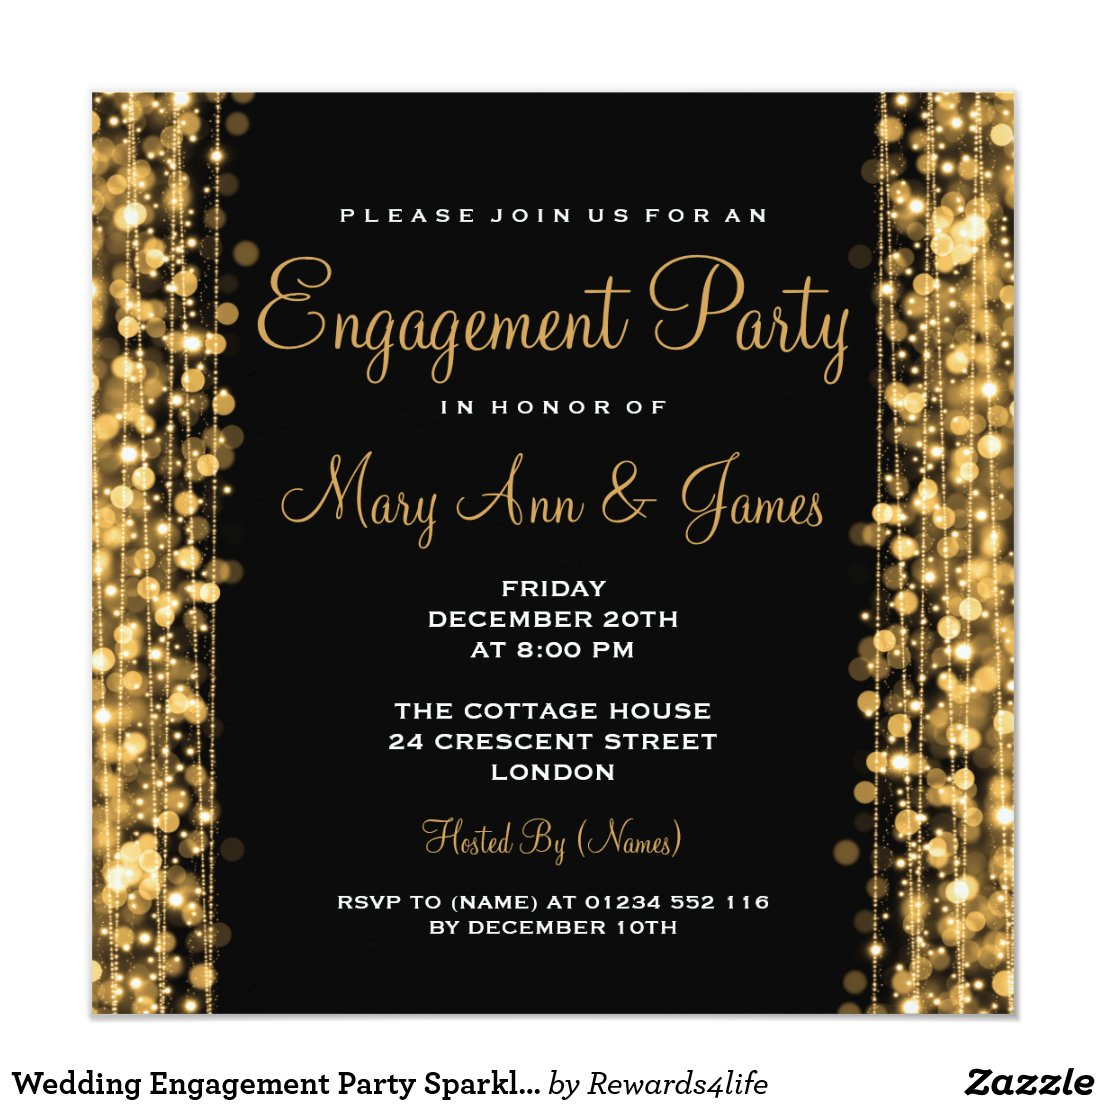 Wedding Engagement Party Sparkles Gold Invitation